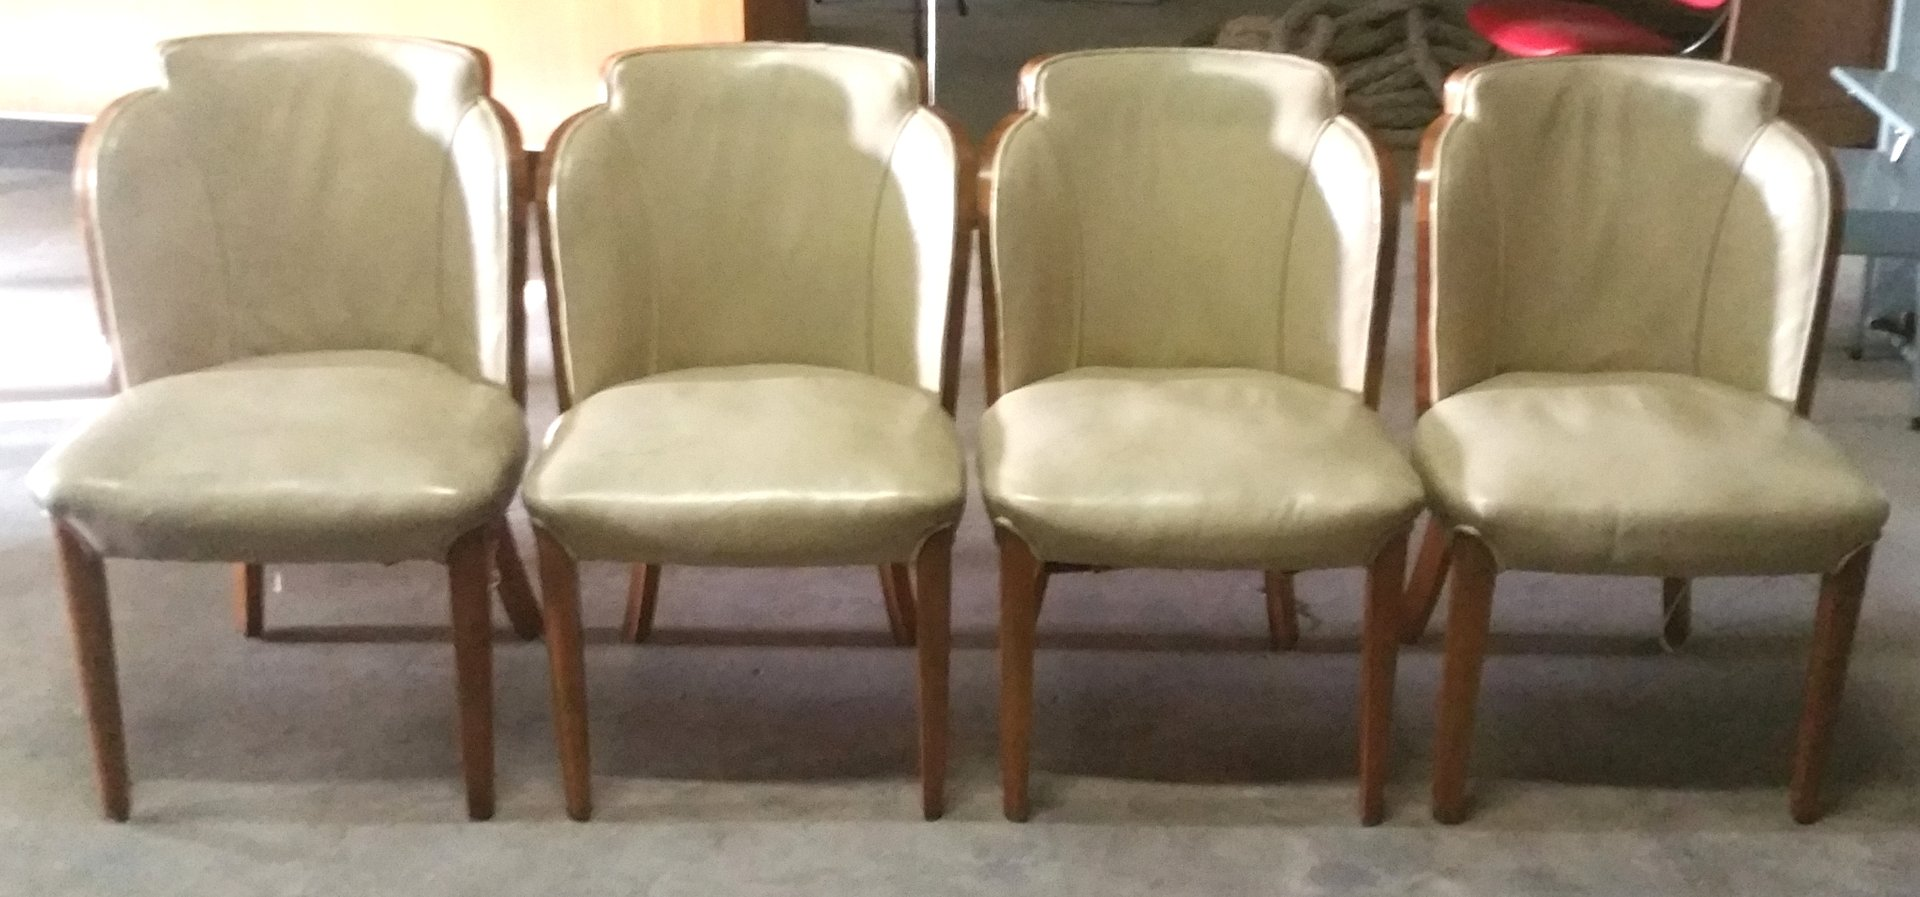 Art Deco Dining Chairs By Harry U0026 Lou Epstein, Set Of 4